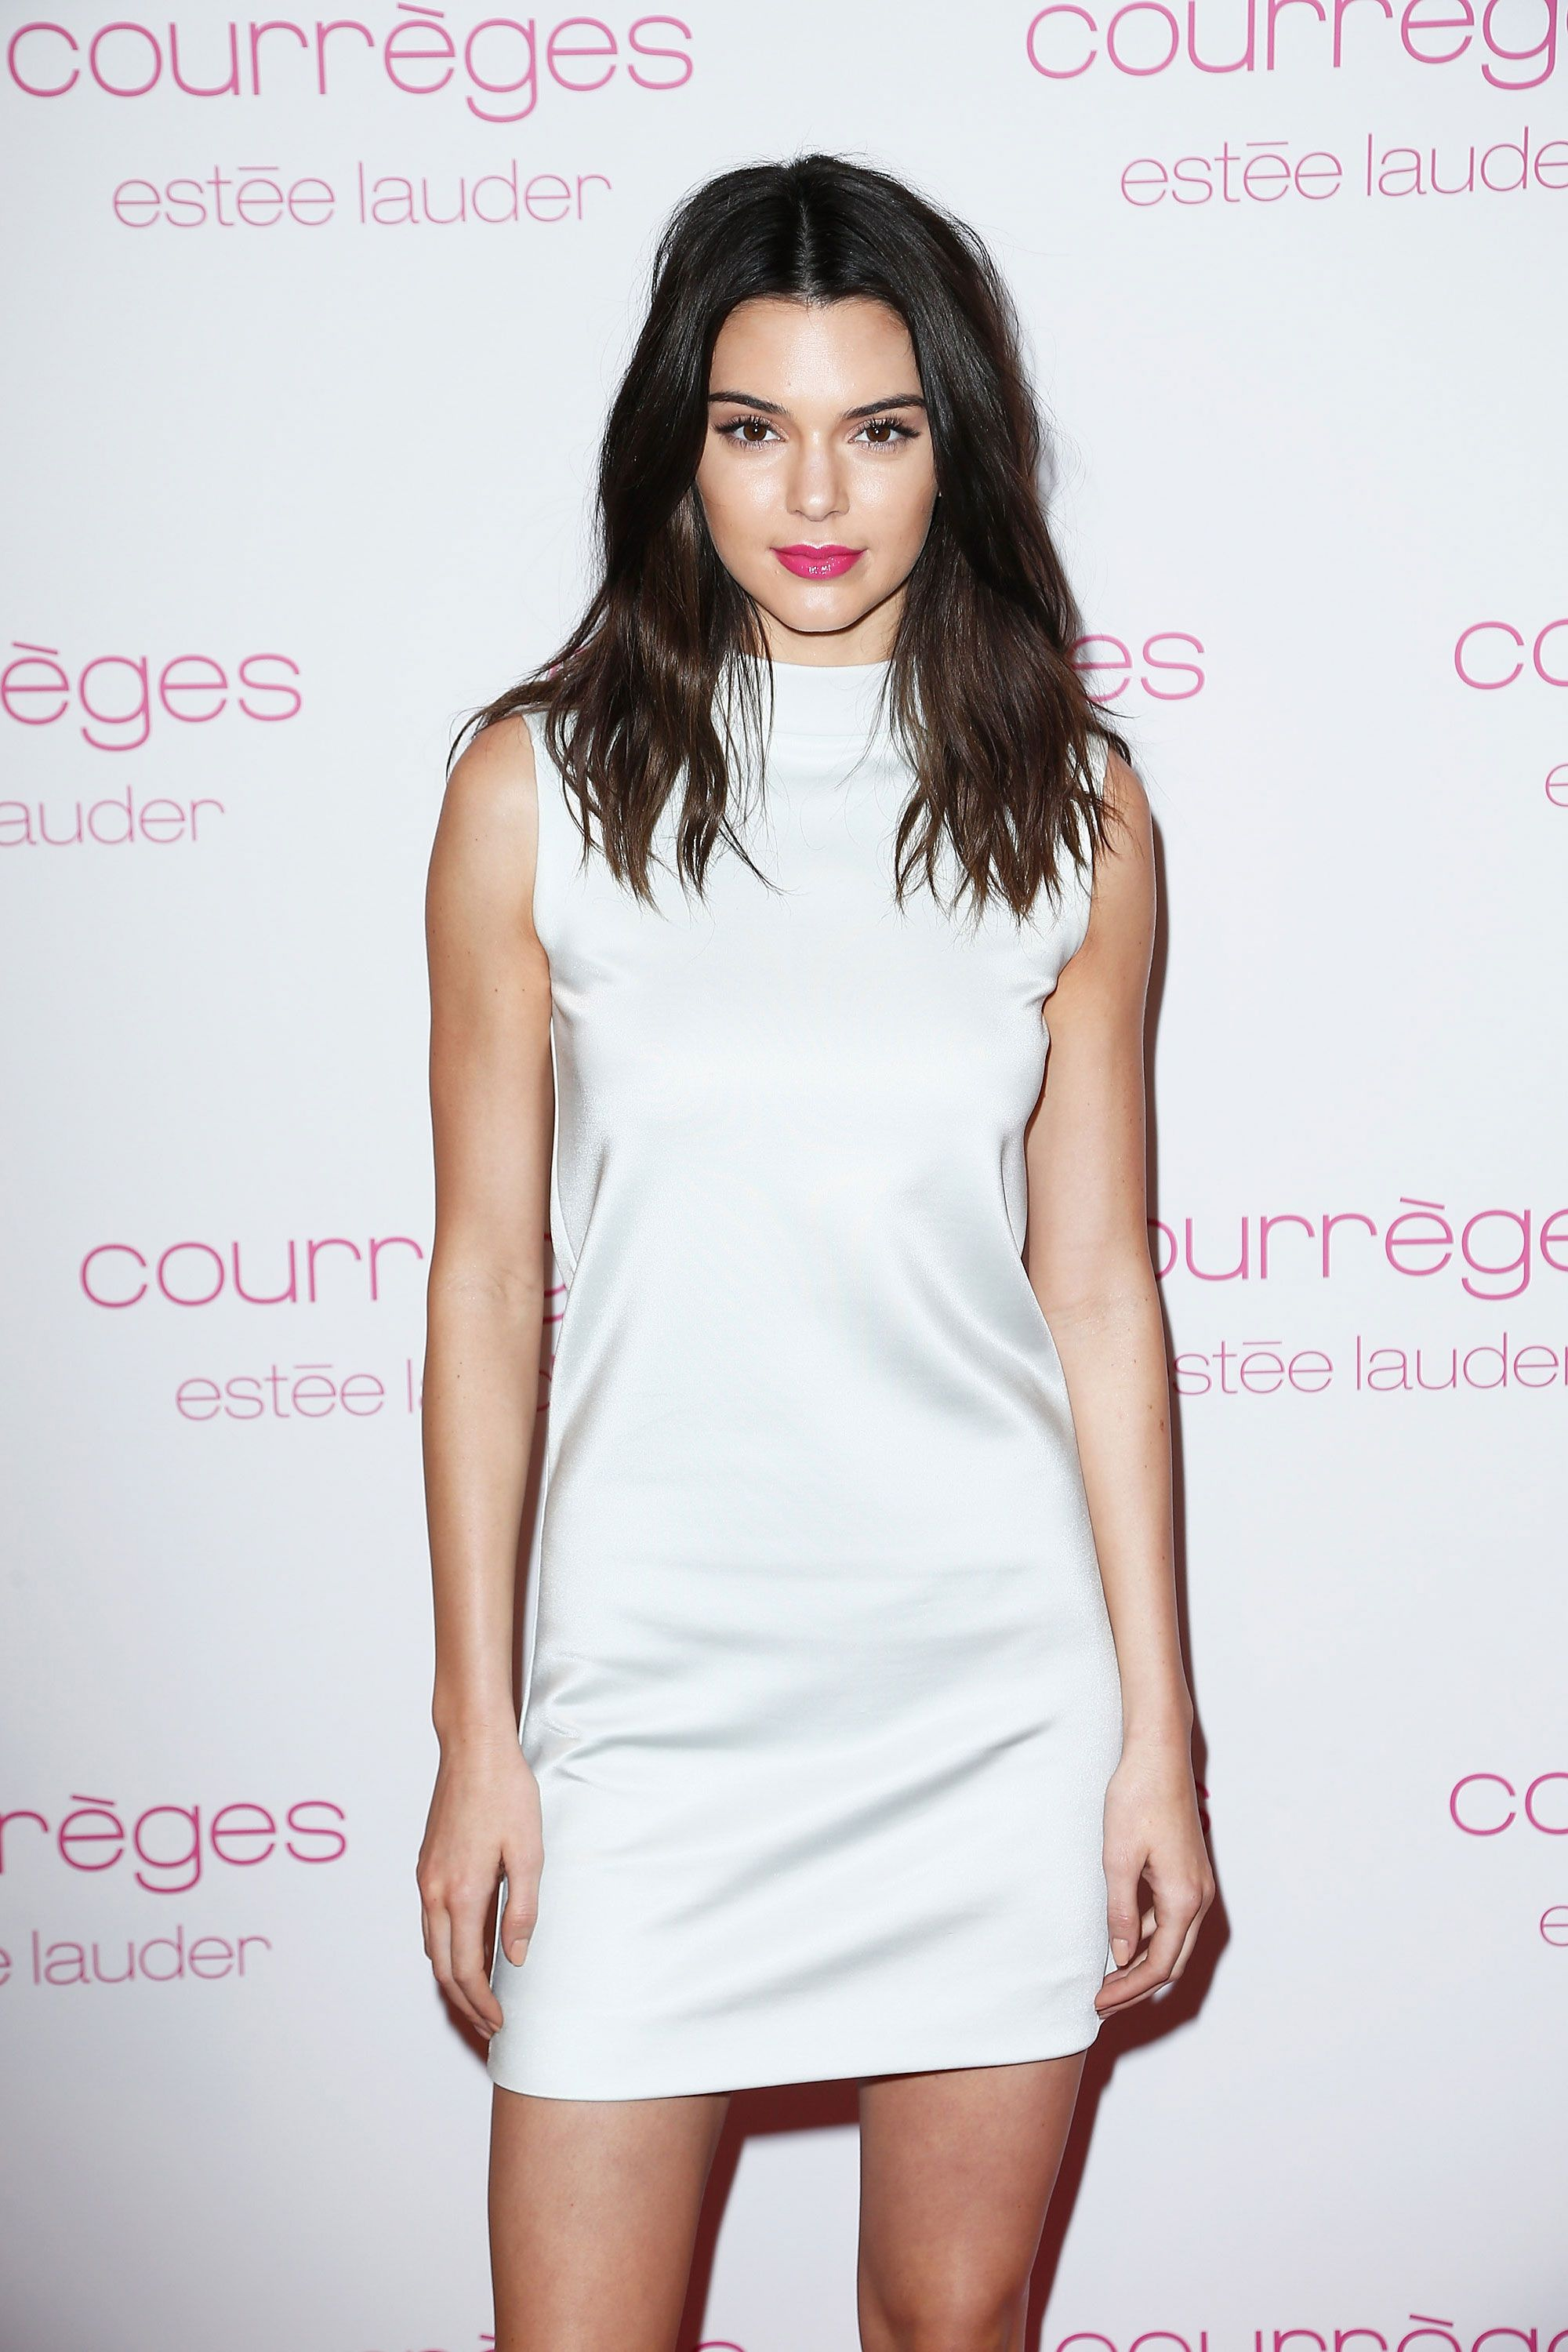 Jenner takes a break from the runway and embraces her youth with a fun fuchsia lip and unfussy strands.